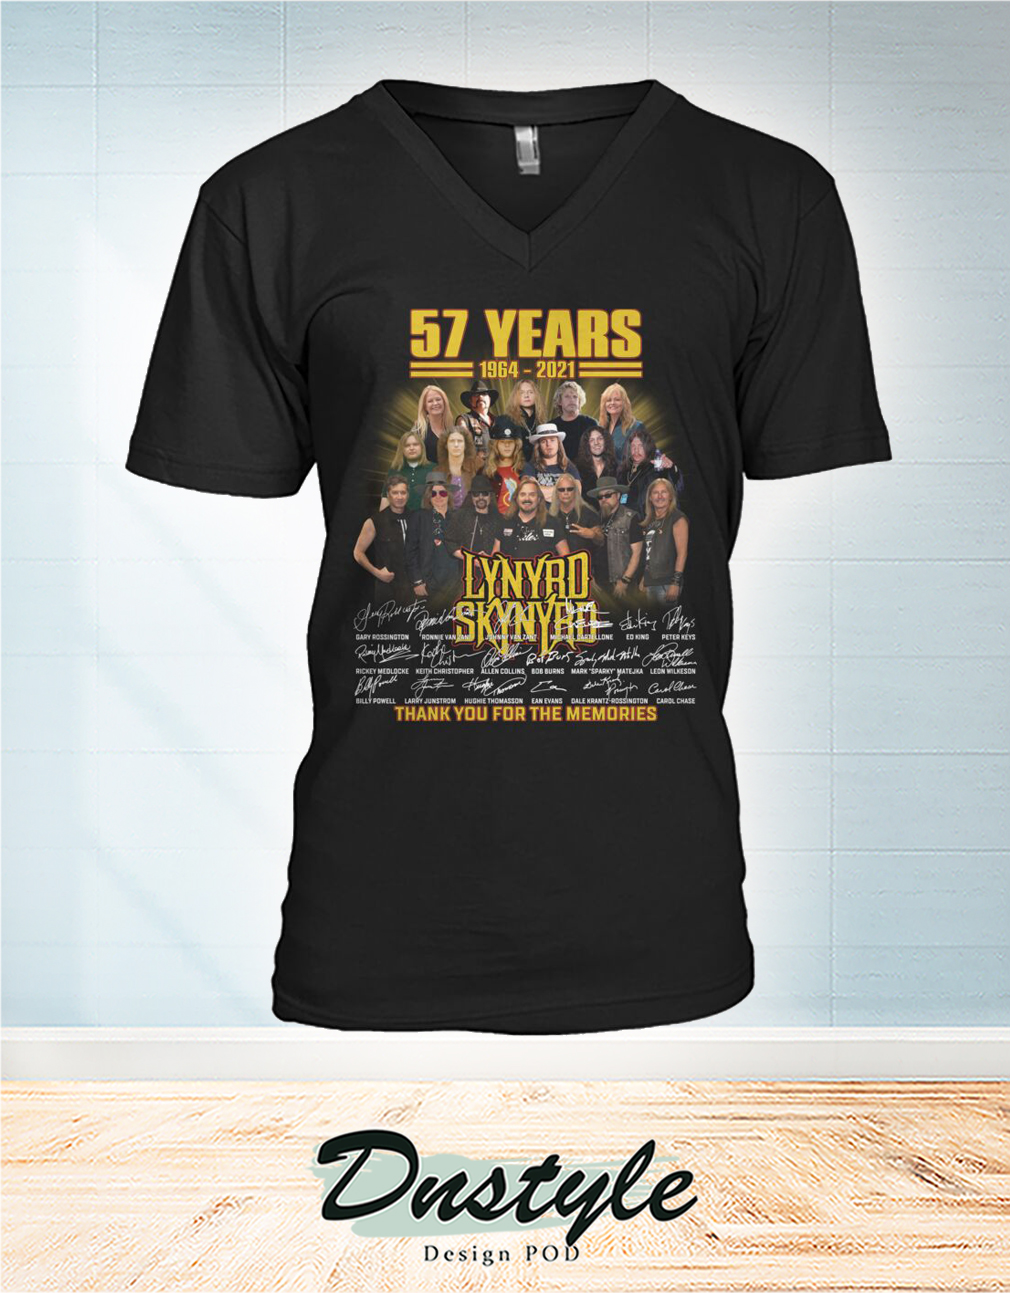 Lynyrd Skynyrd 57 years signature thank you for the memories v-neck